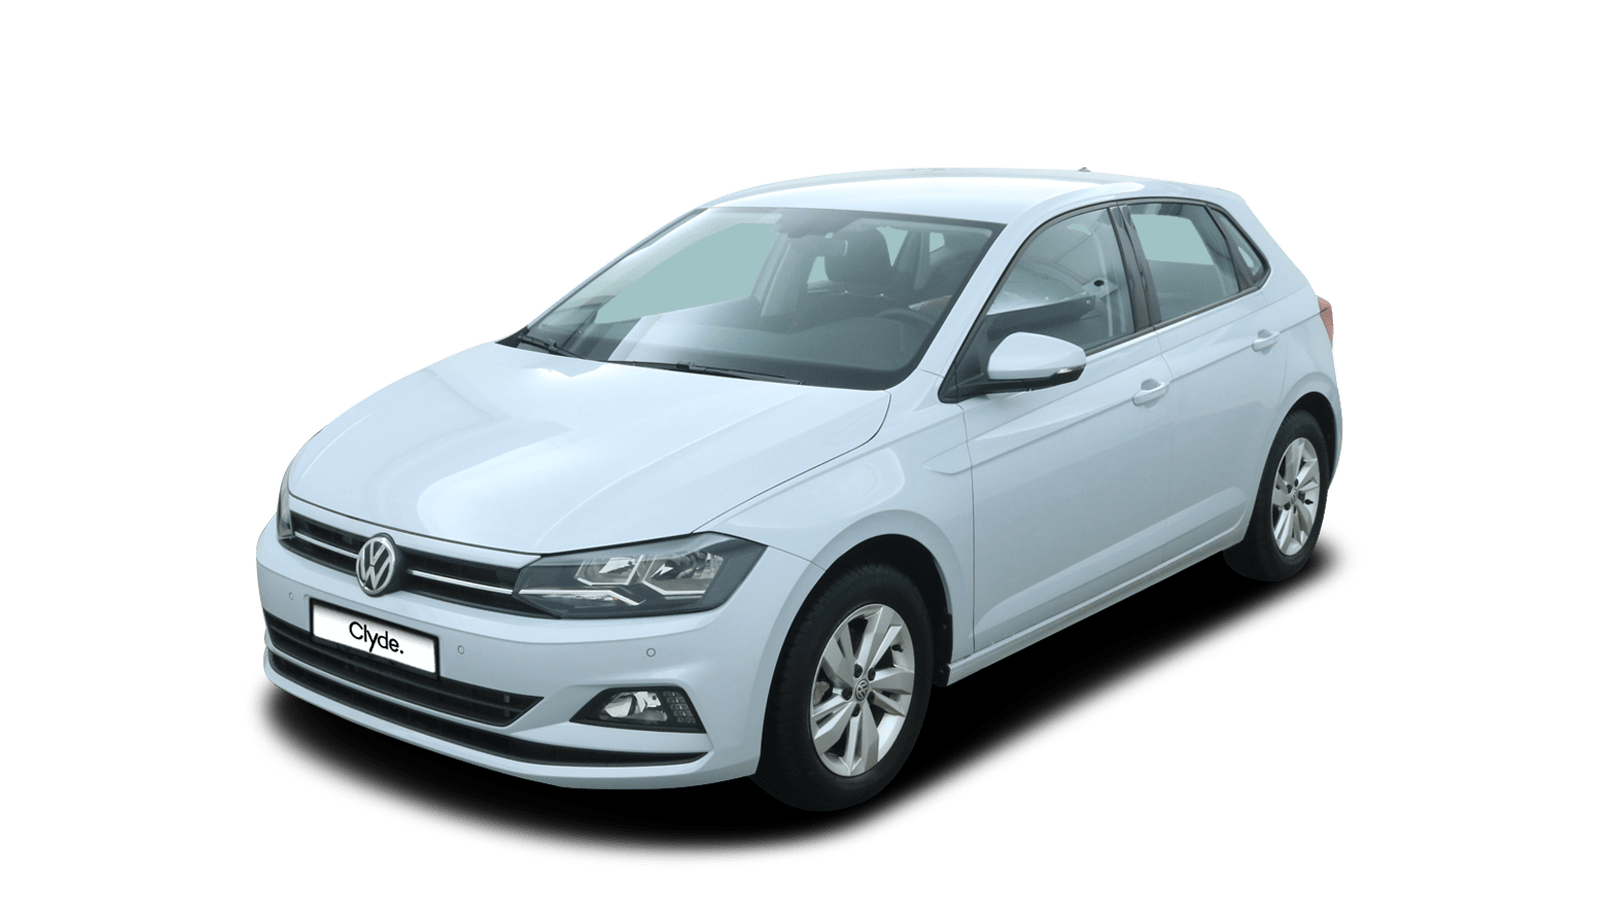 VW Polo White front - Clyde car subscription